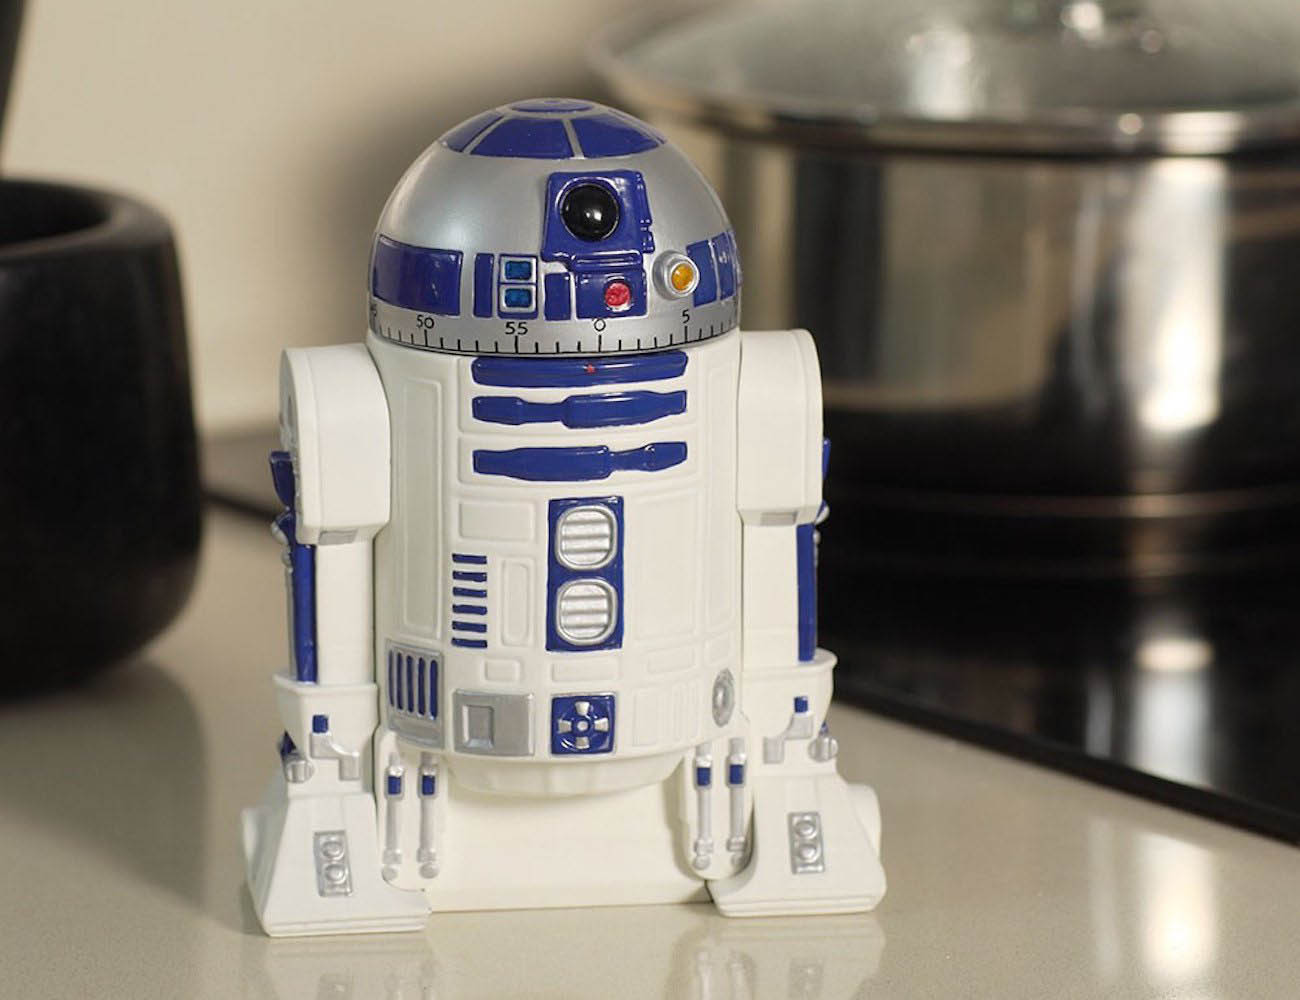 Star Wars R2D2 Kitchen Timer